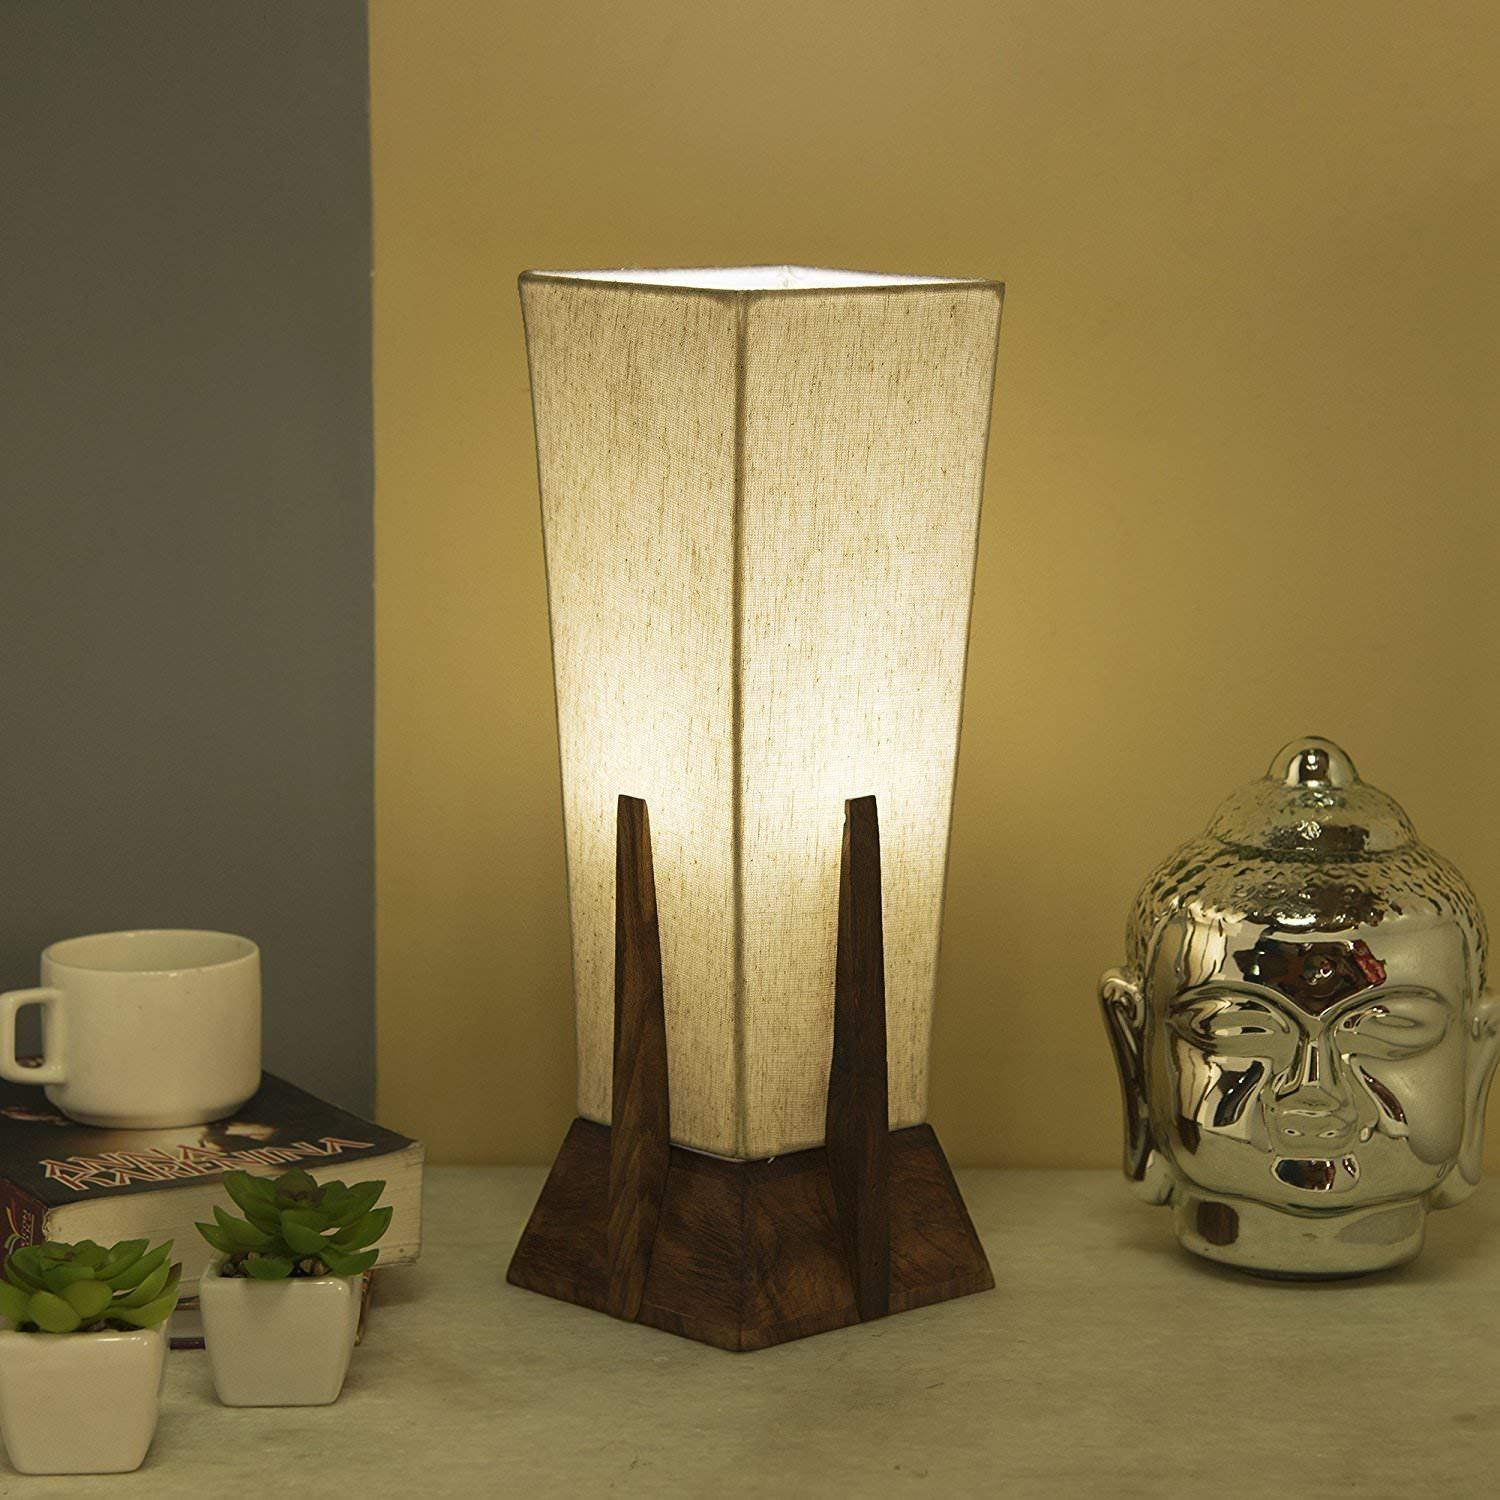 Buy DEEPLITE Bedside Table Lamp, Desk Lamp, Nightstand ...